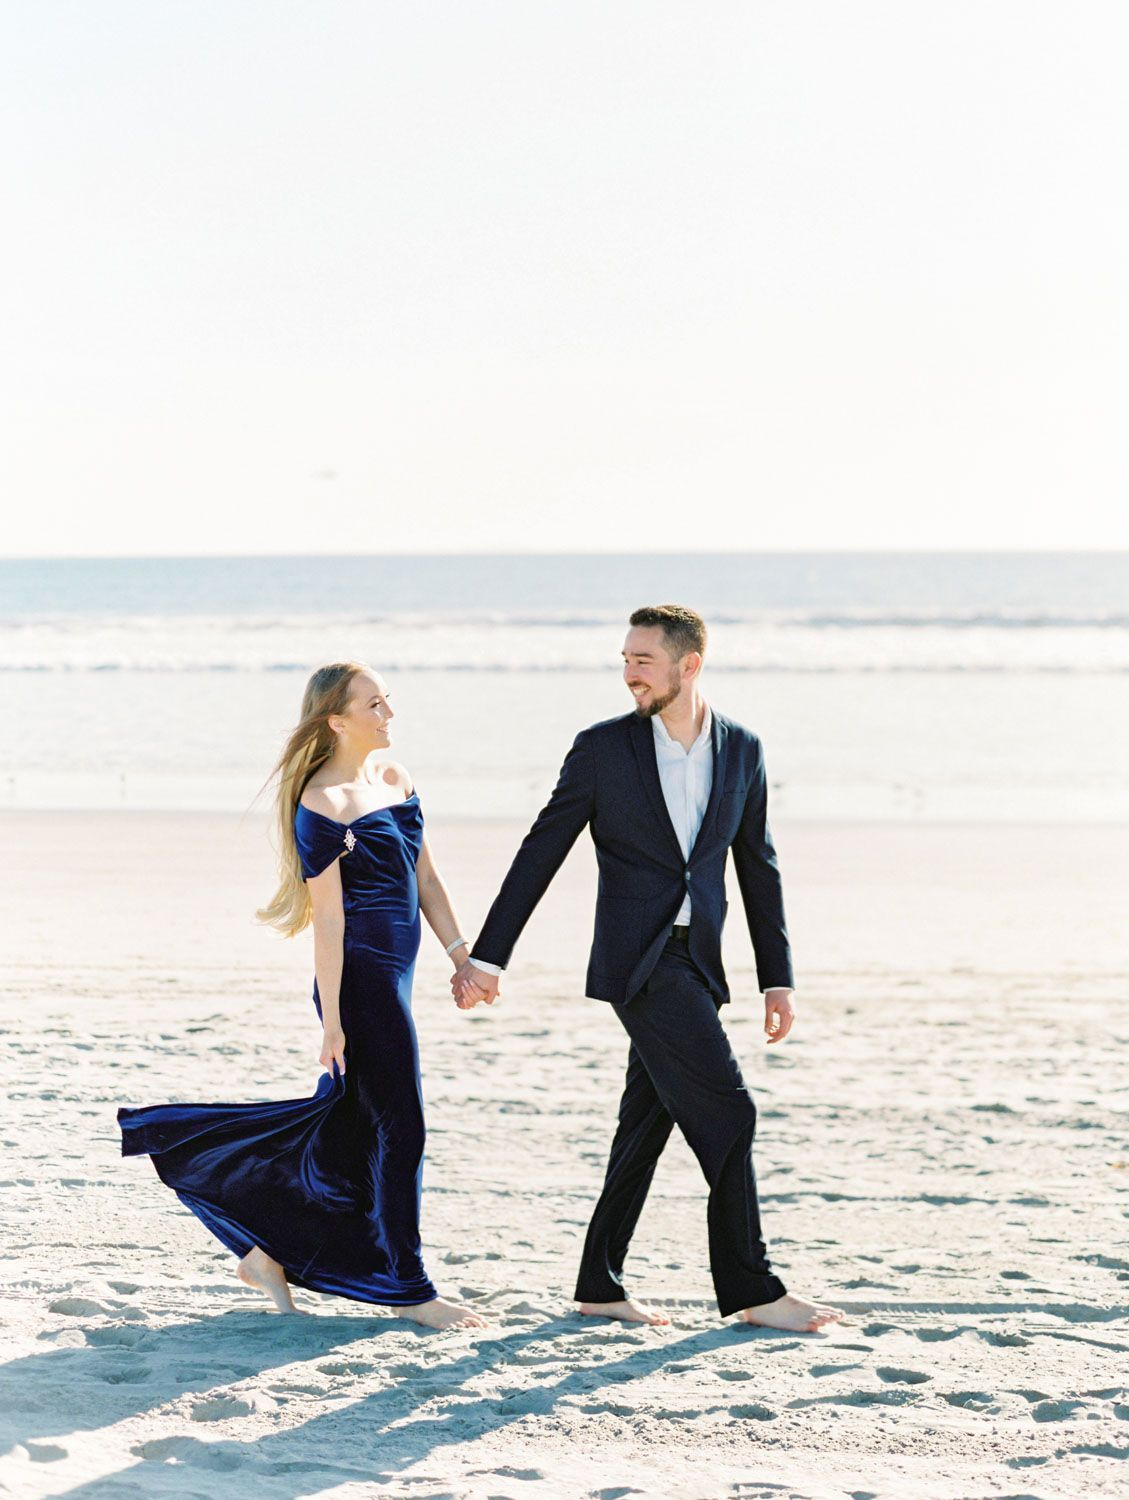 Elegant Coronado Island Engagement Photos on the Beach -  Bride in navy velvet gown and groom in suit. Elegant Coronado Engagement Photos on the Beach on fil - #Beach #Coronado #elegant #Engagement #EngagementPhotosafricanamerican #EngagementPhotosbeach #EngagementPhotoscountry #EngagementPhotosfall #EngagementPhotosideas #EngagementPhotosoutfits #EngagementPhotosposes #EngagementPhotosspring #EngagementPhotoswinter #EngagementPhotoswithdog #Island #Photos #summerEngagementPhotos #uniqueEngagem